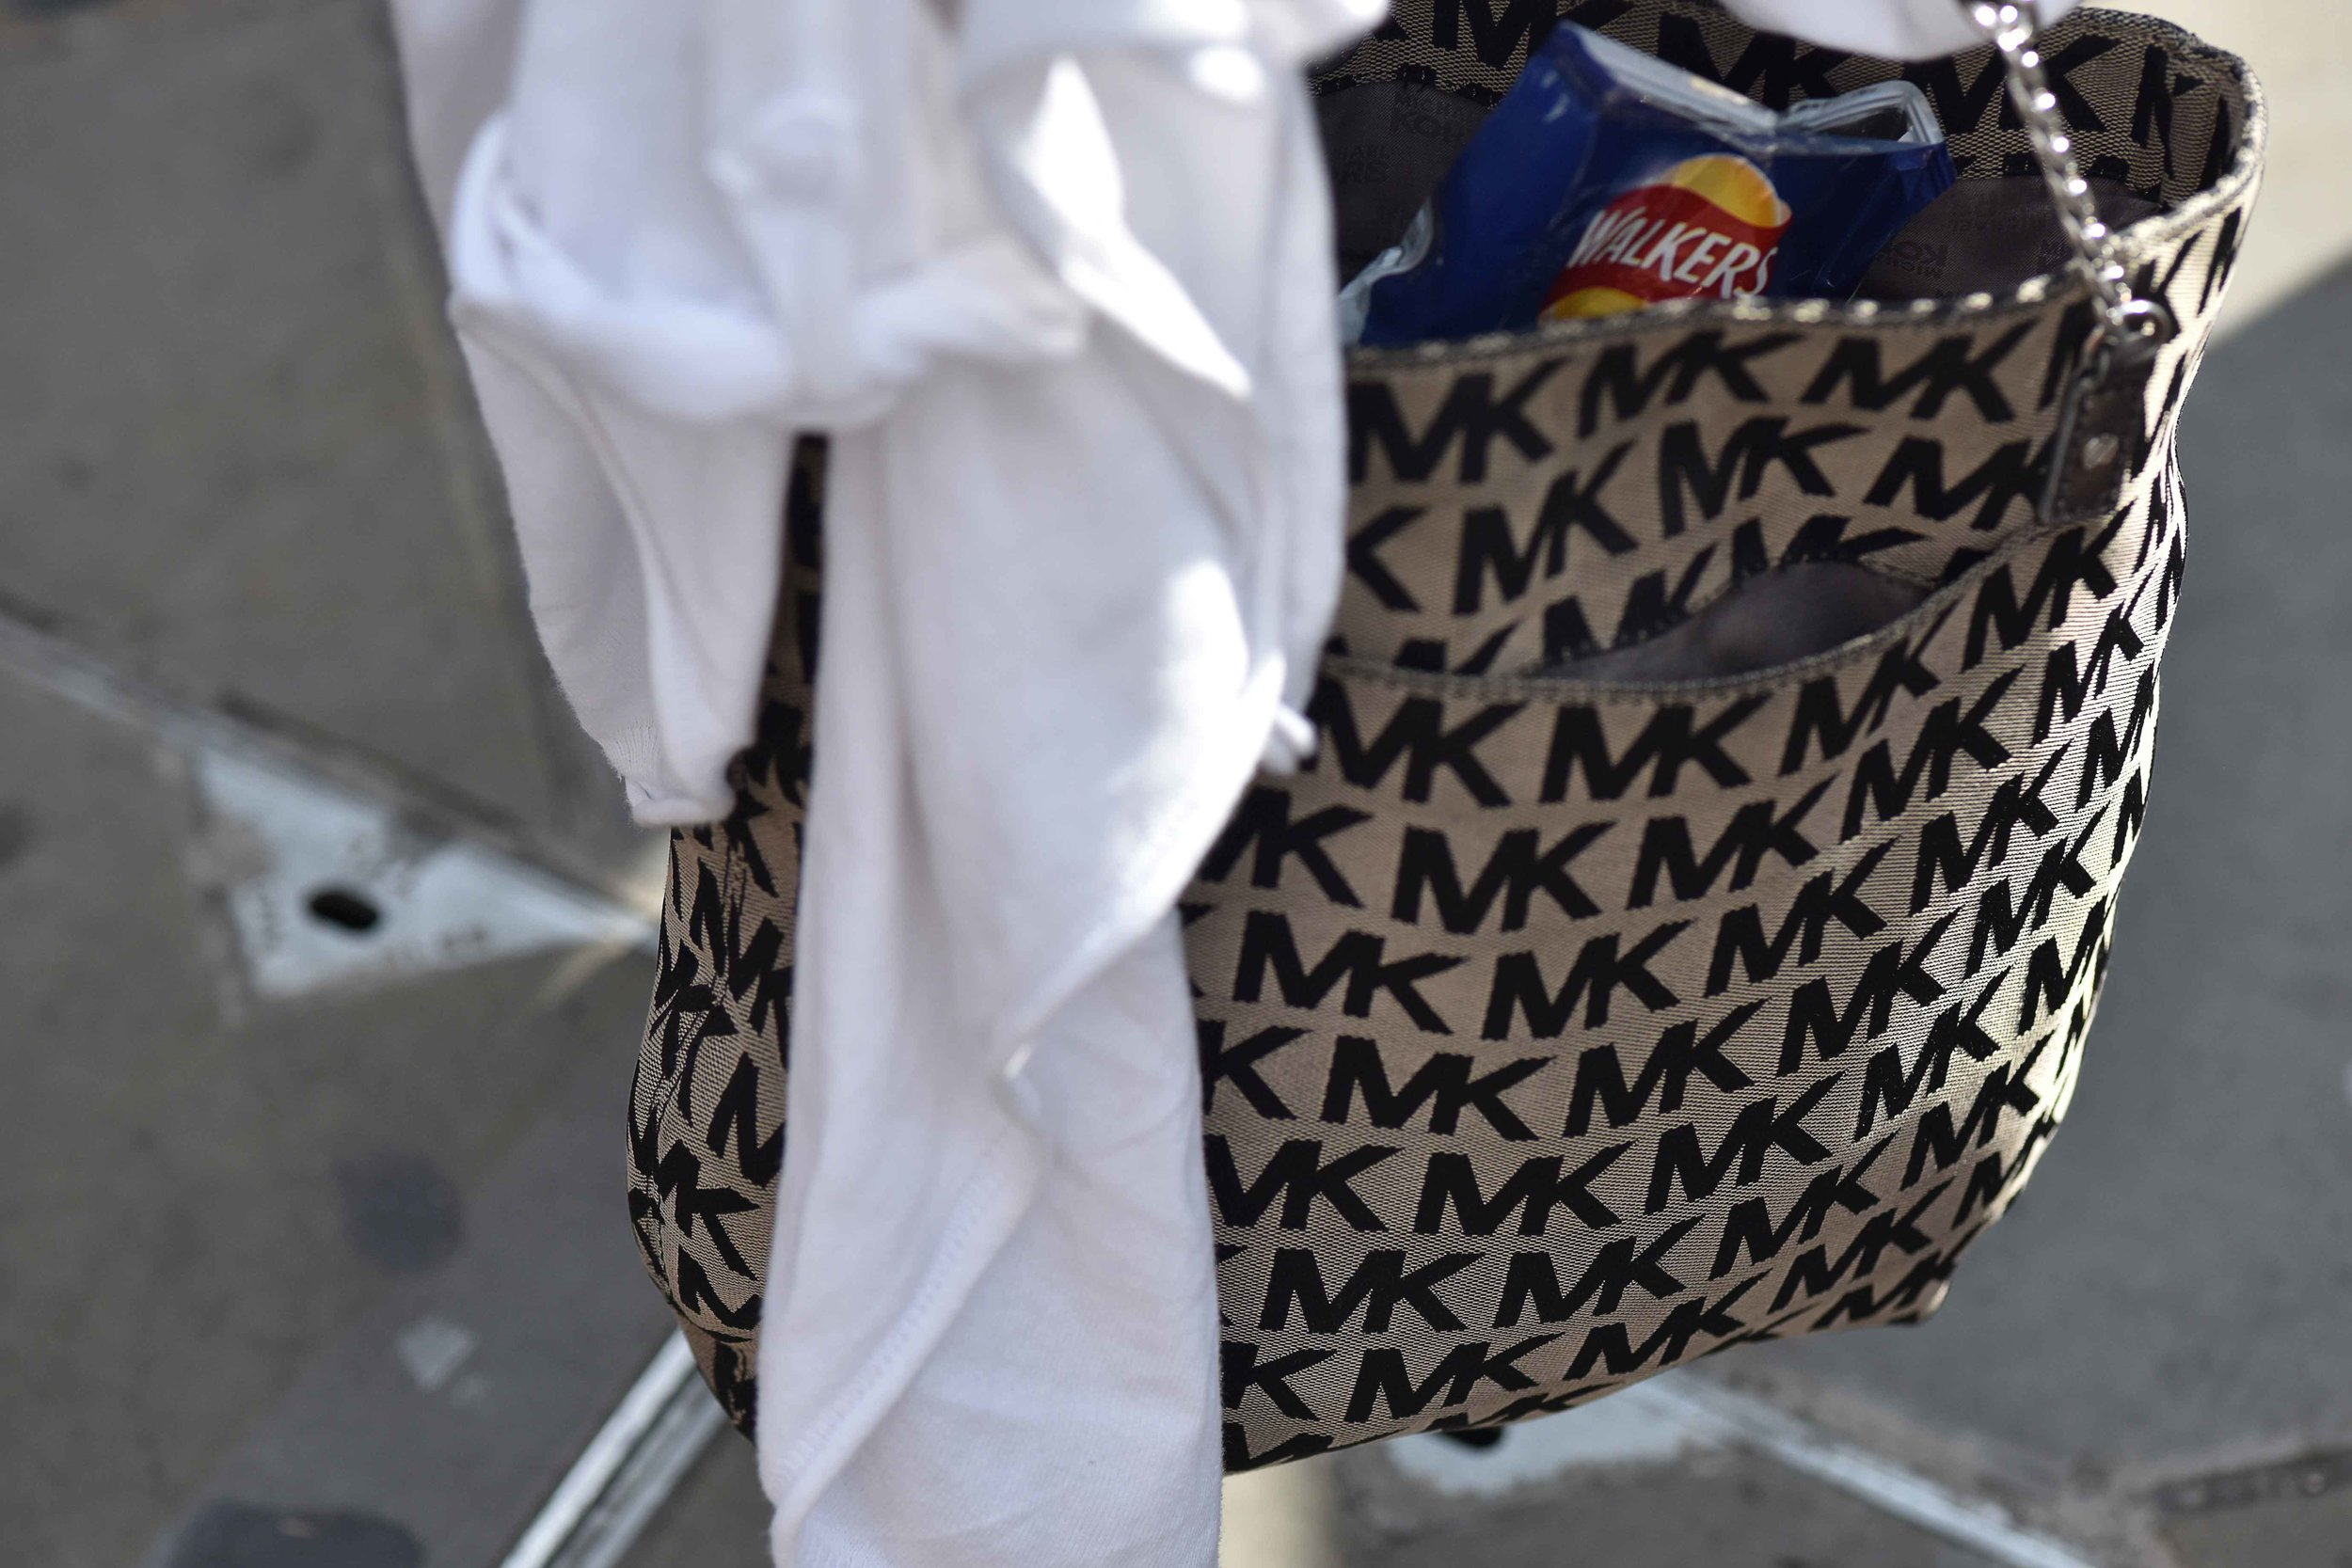 Michael Kors tote, MK all over design, clicked at Westminster Abbey, London, U.K. Image©sourcingstyle.com